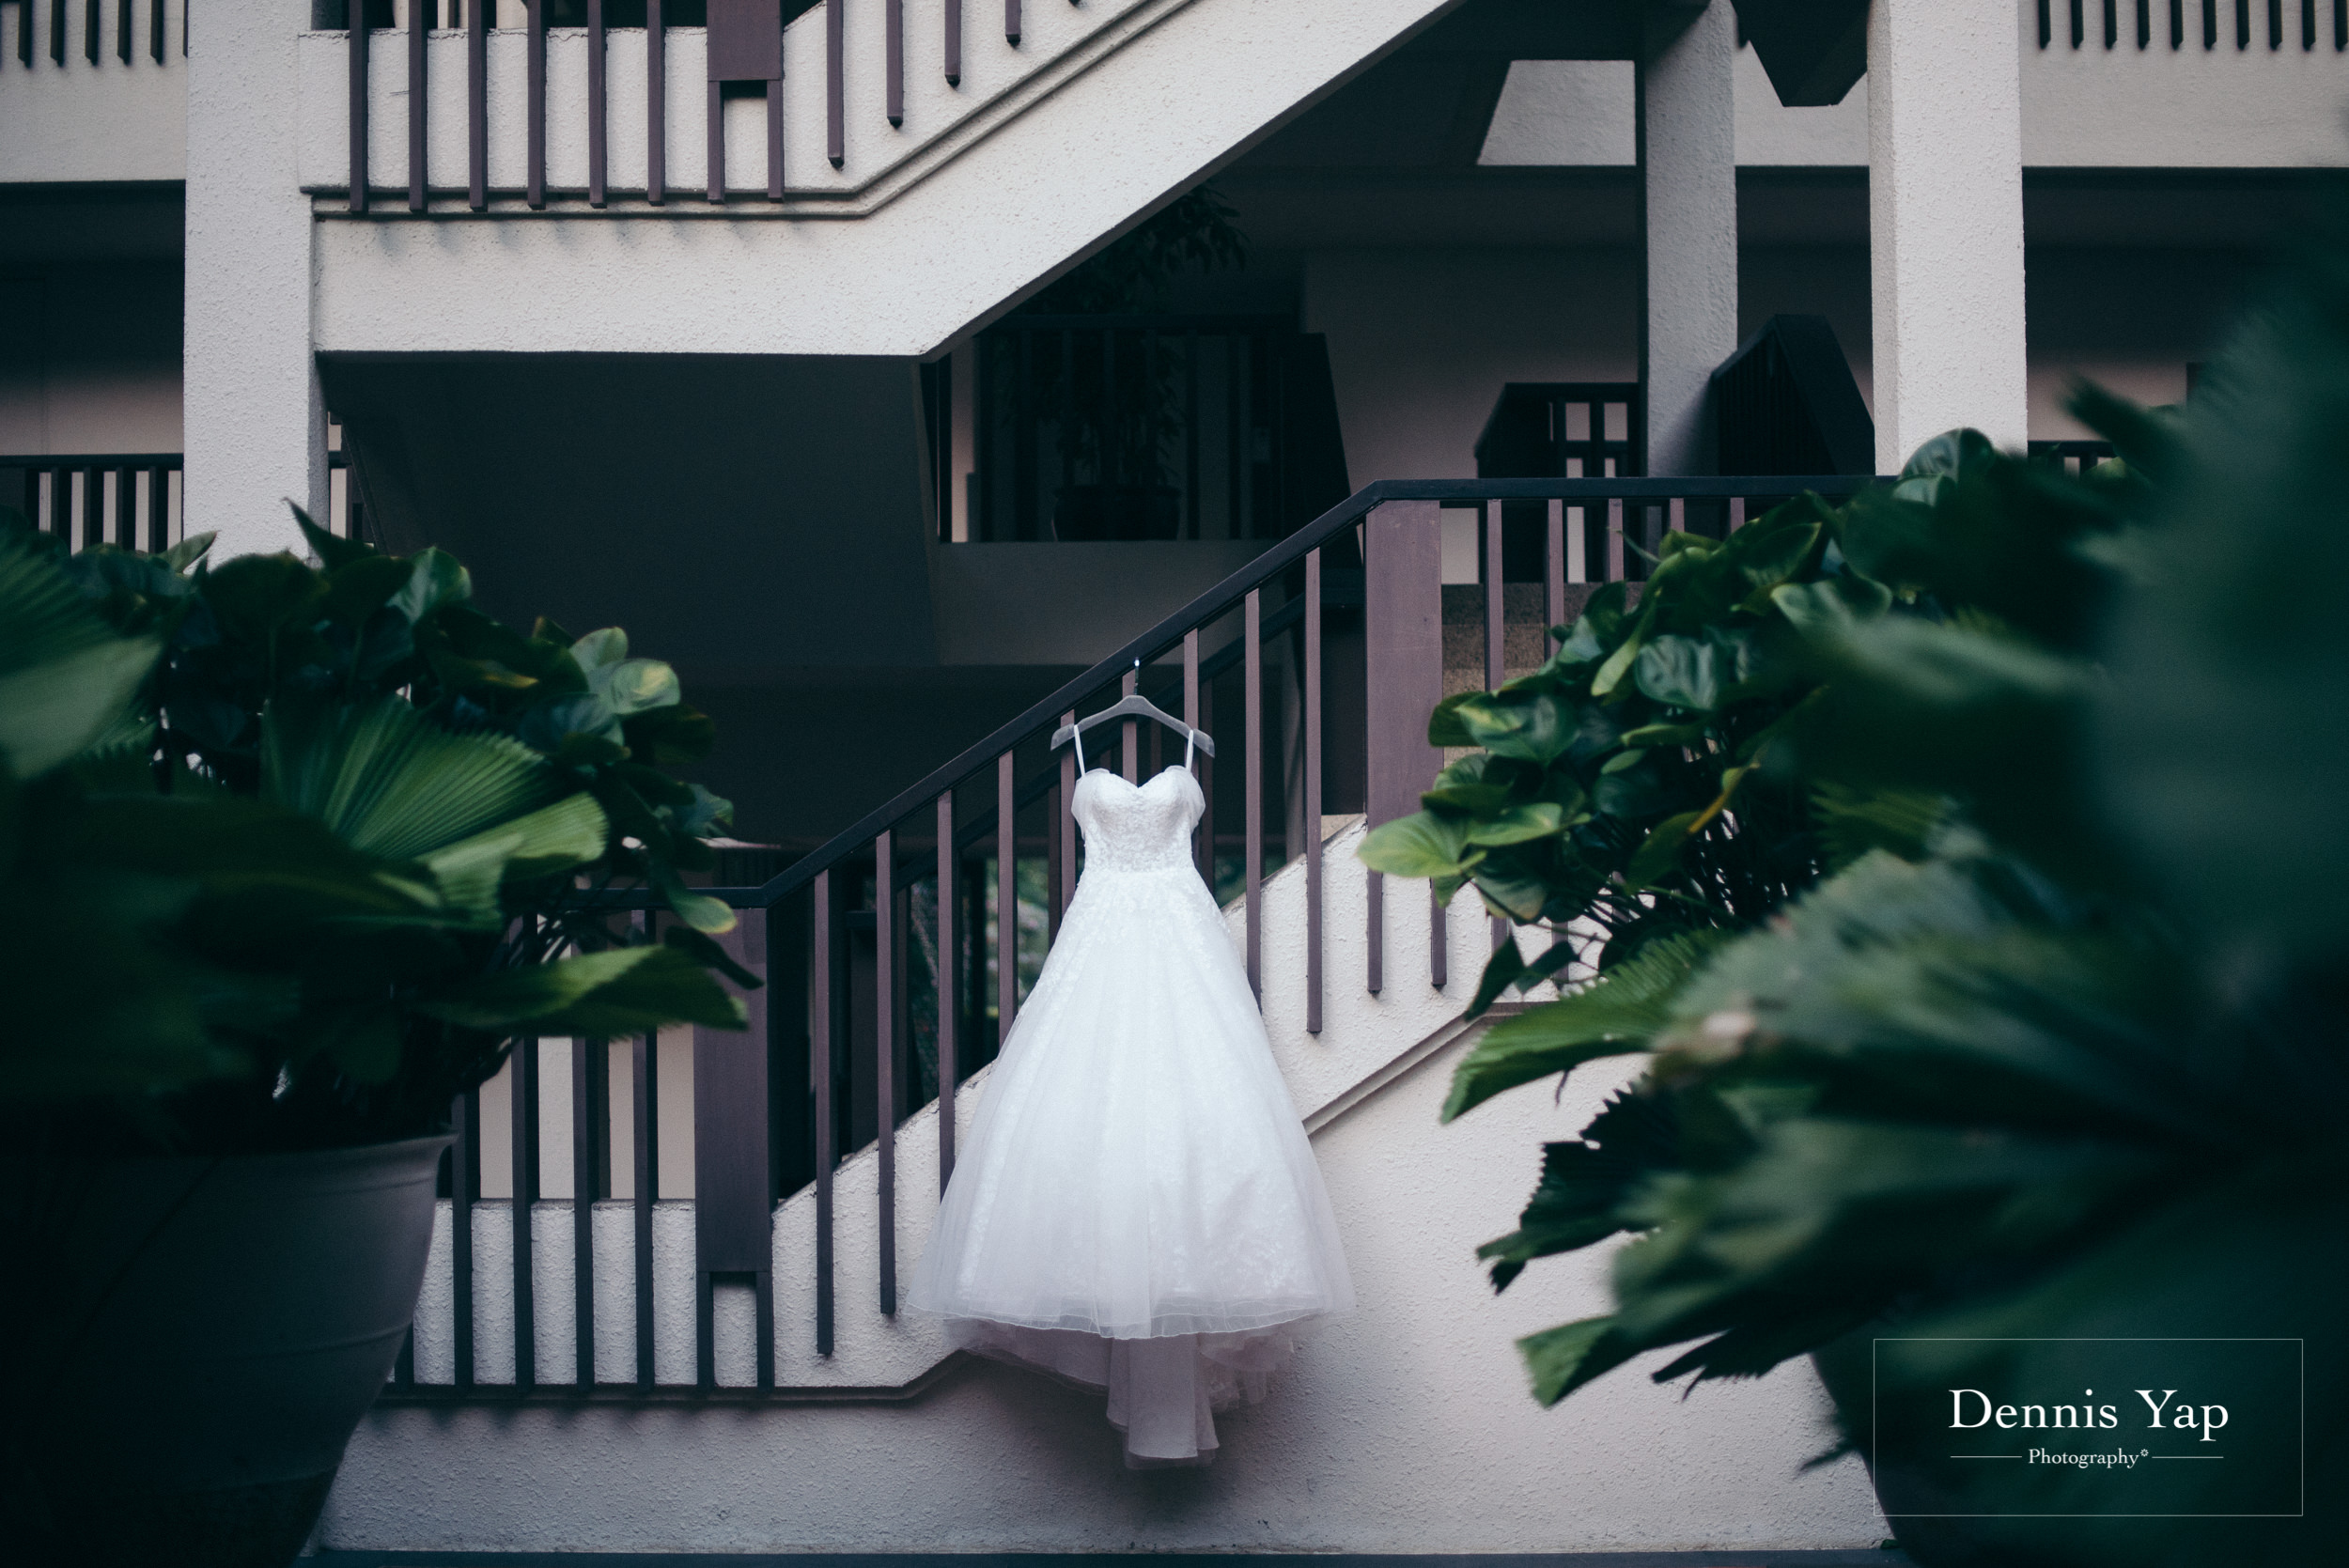 CT Annie garden wedding saujana subang jaya dennis yap photography IT malaysia top photographer-2.jpg